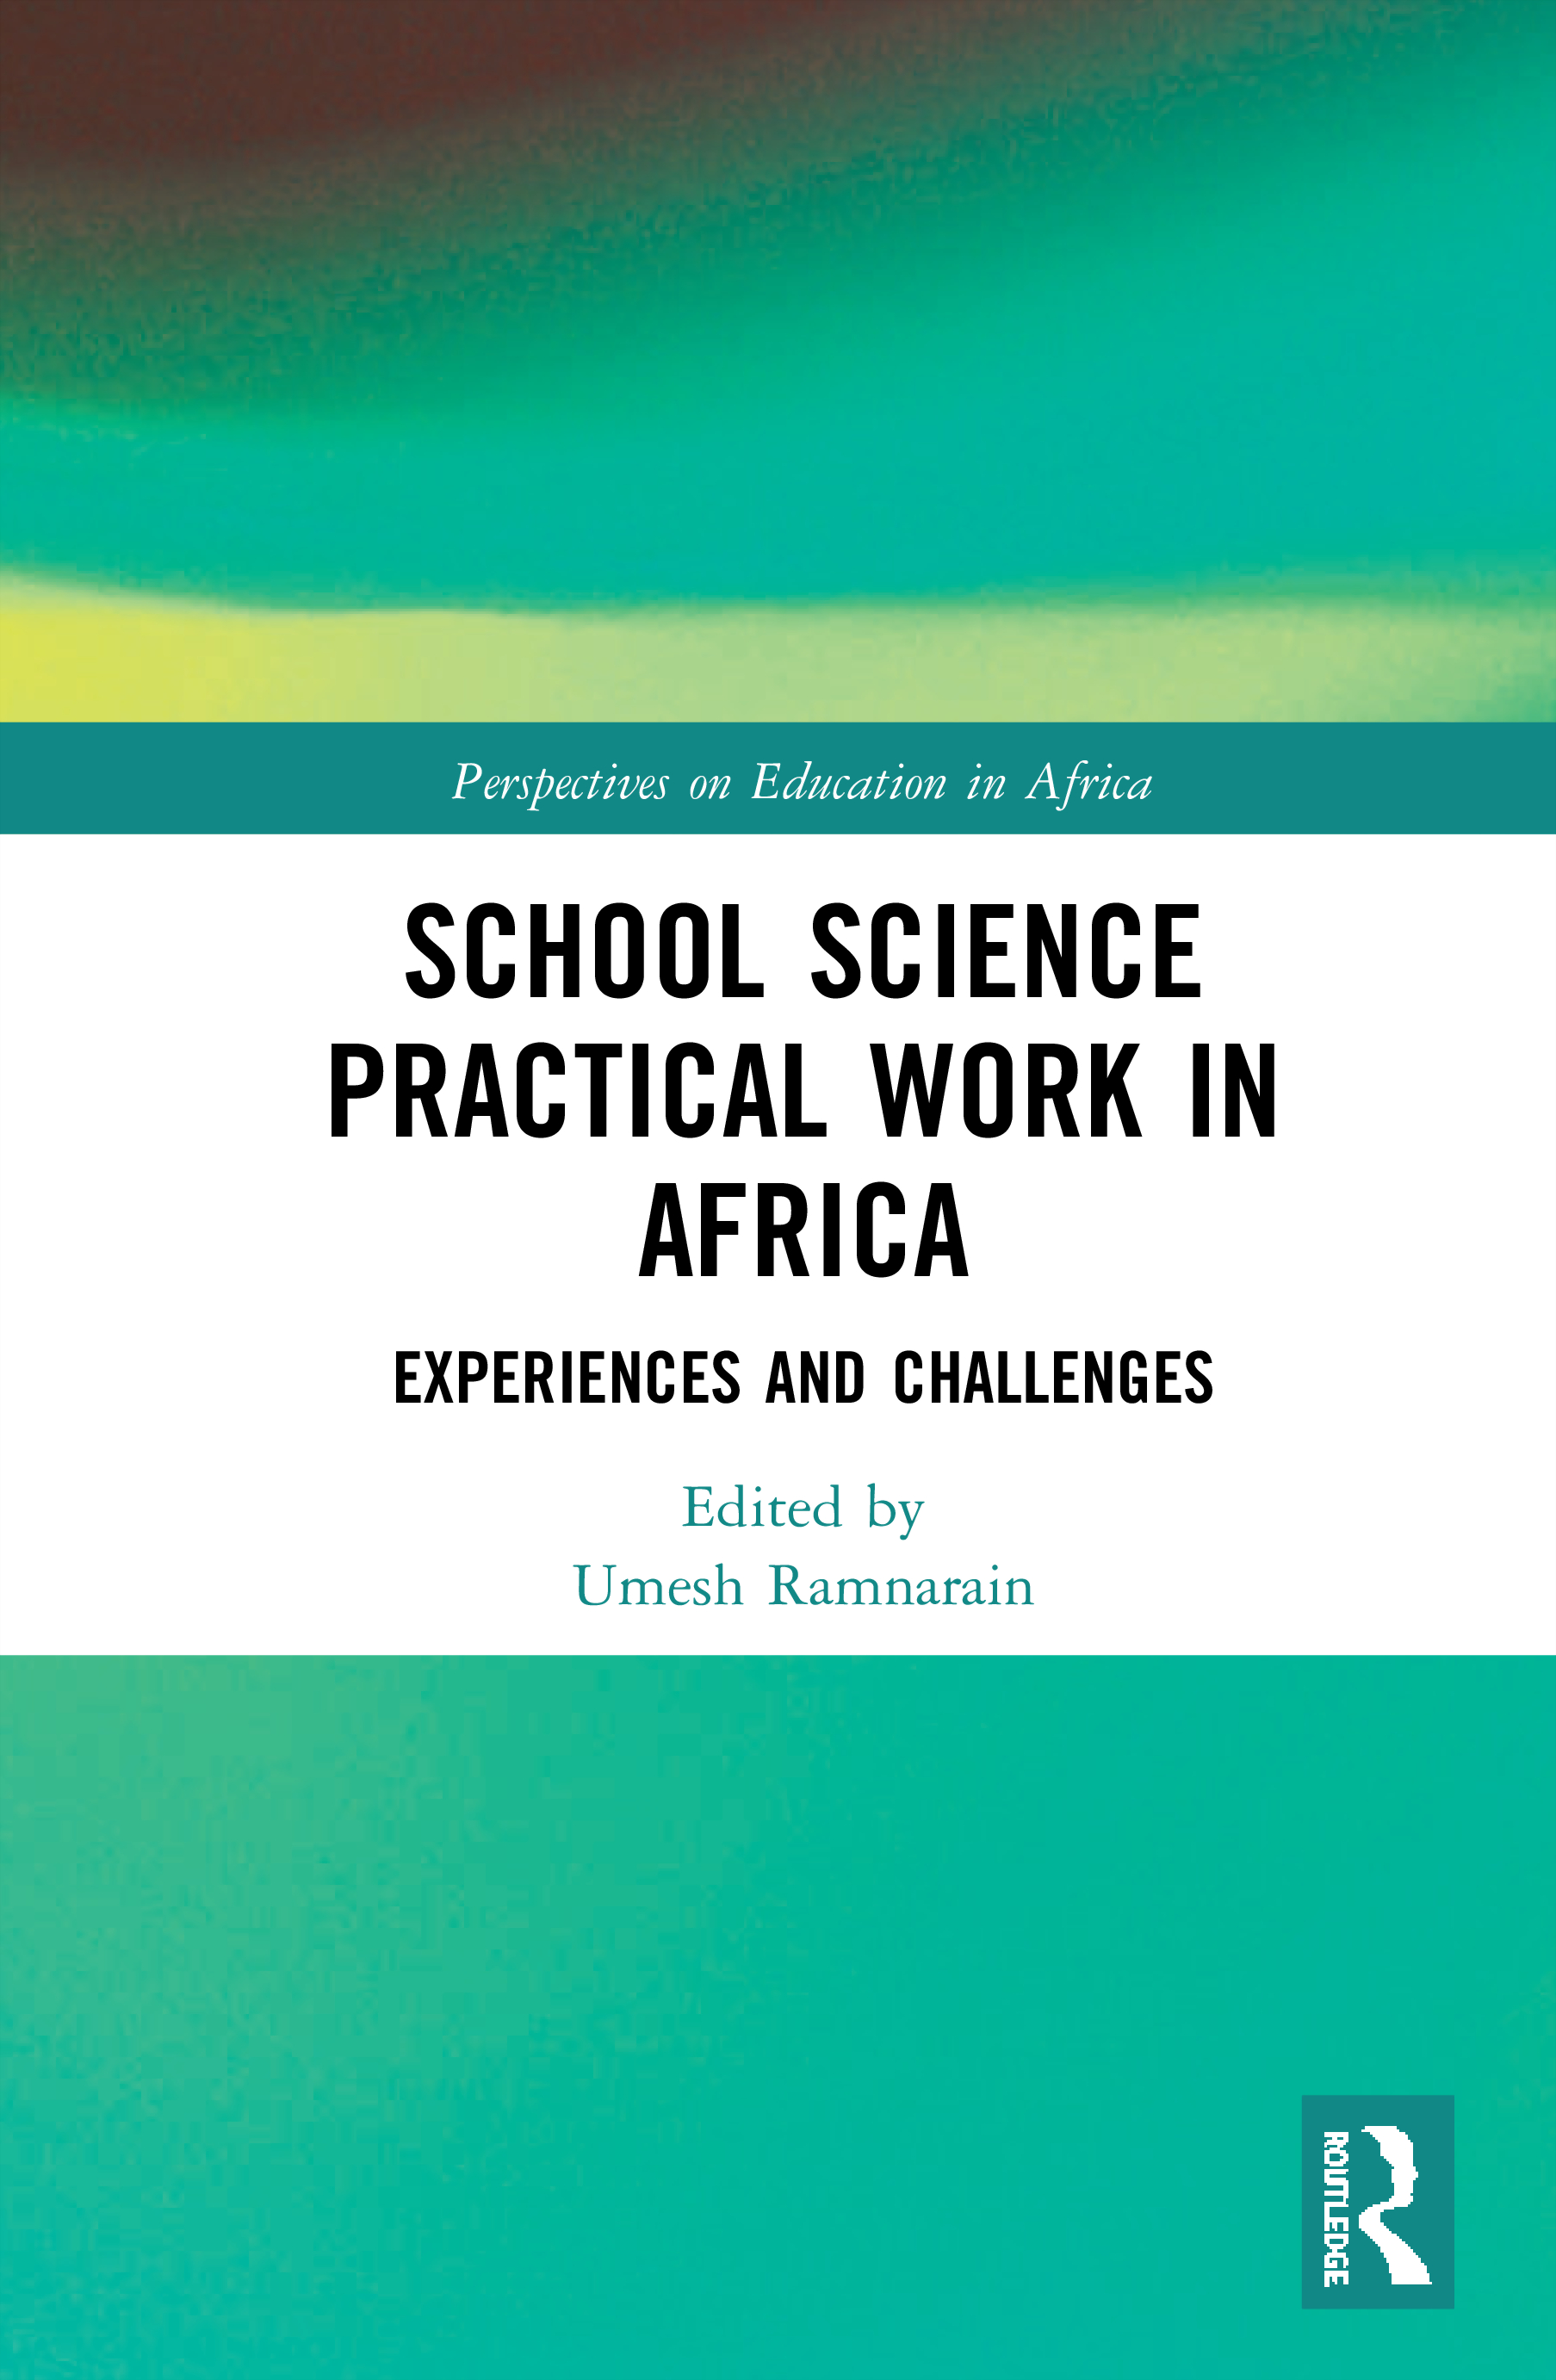 School Science Practical Work in Africa: Experiences and Challenges book cover